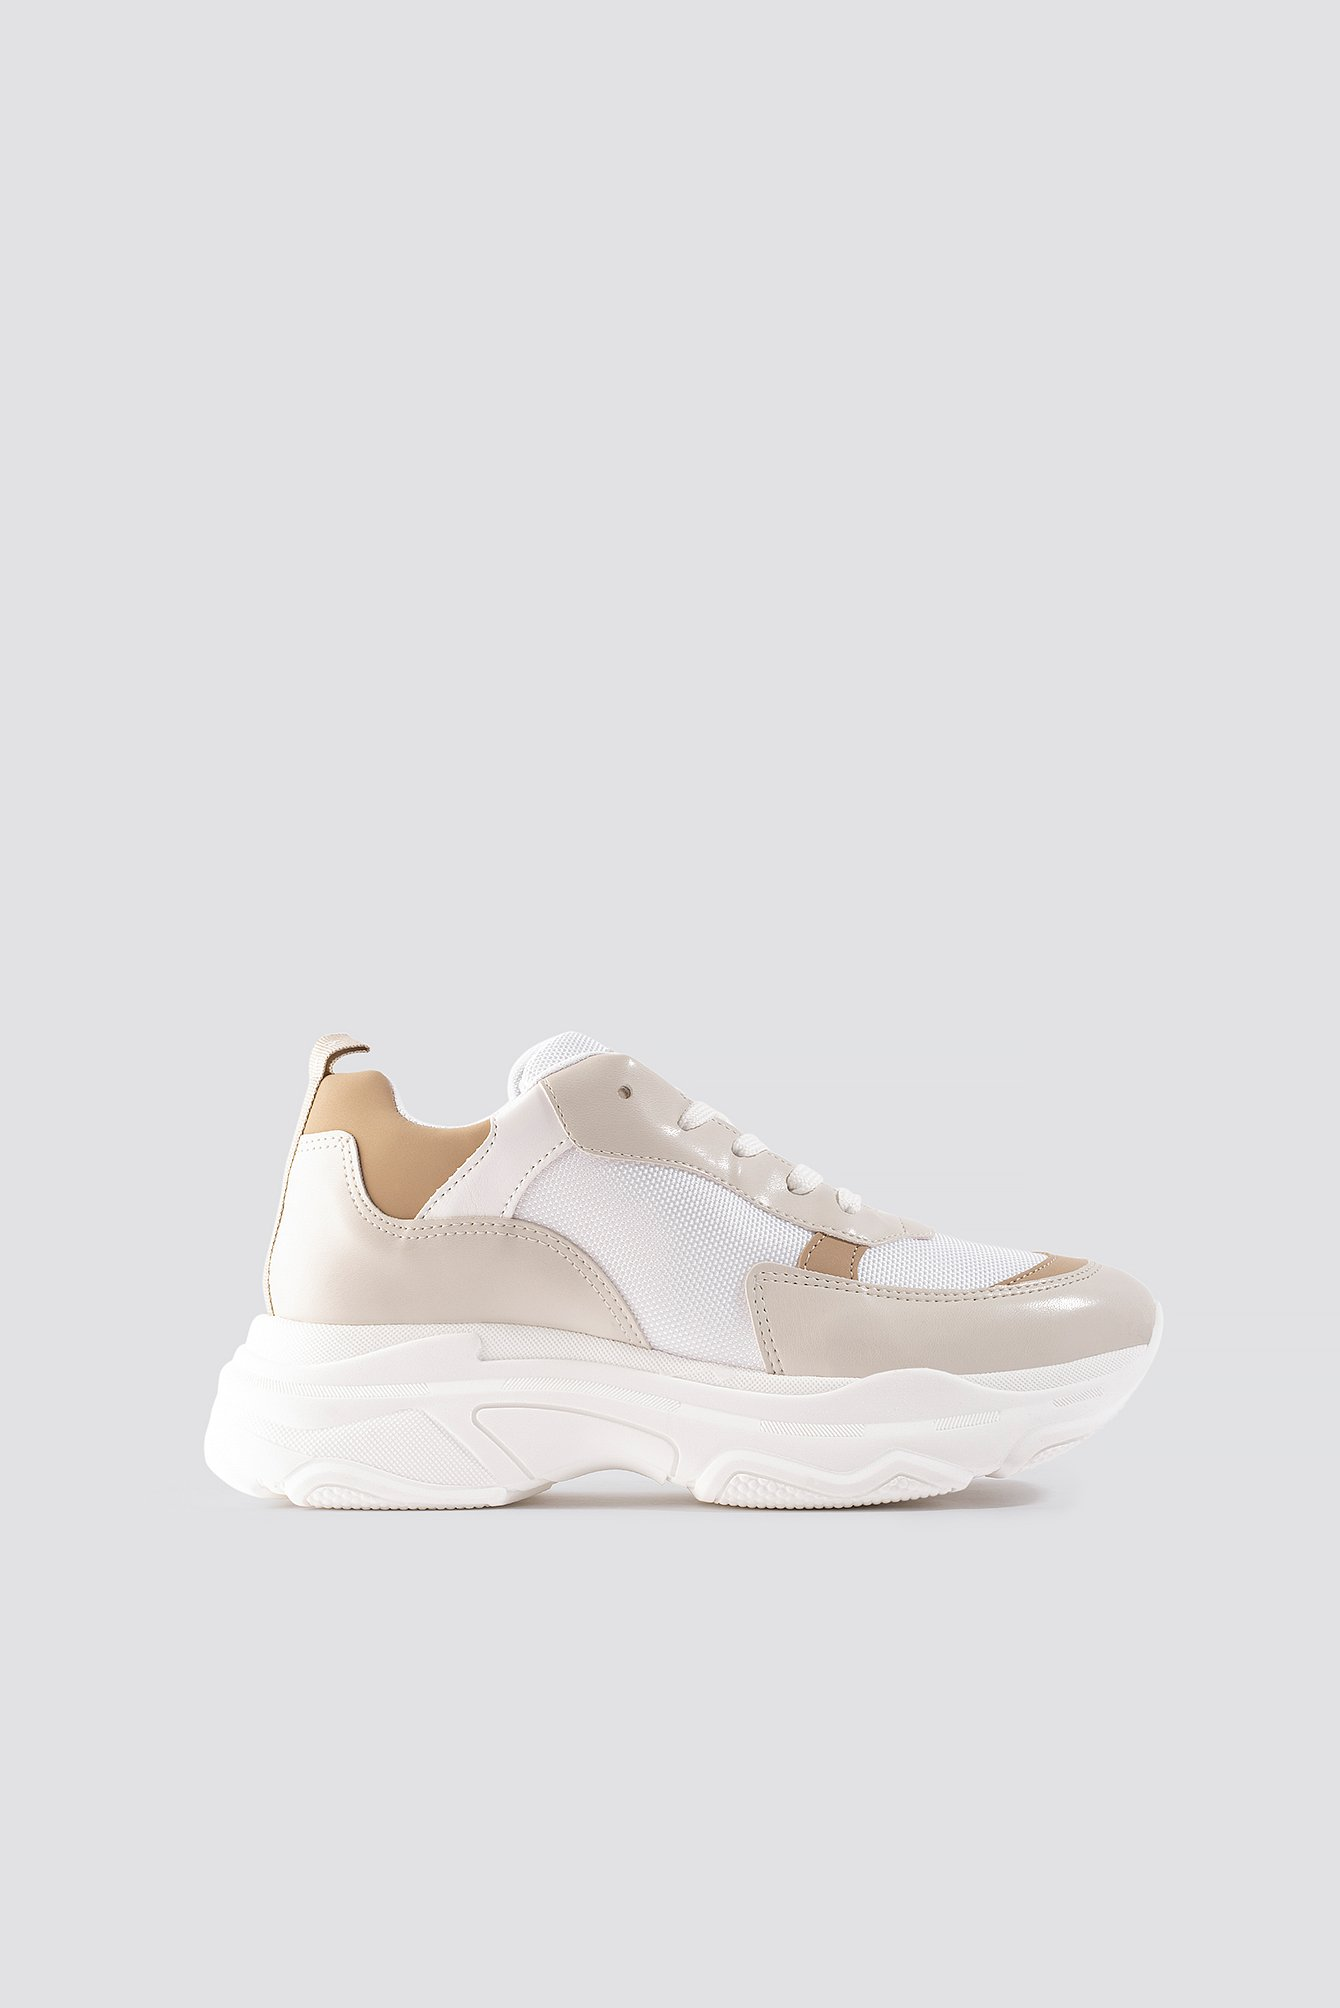 na-kd shoes -  Tone In Tone Chunky Trainers - White,Beige